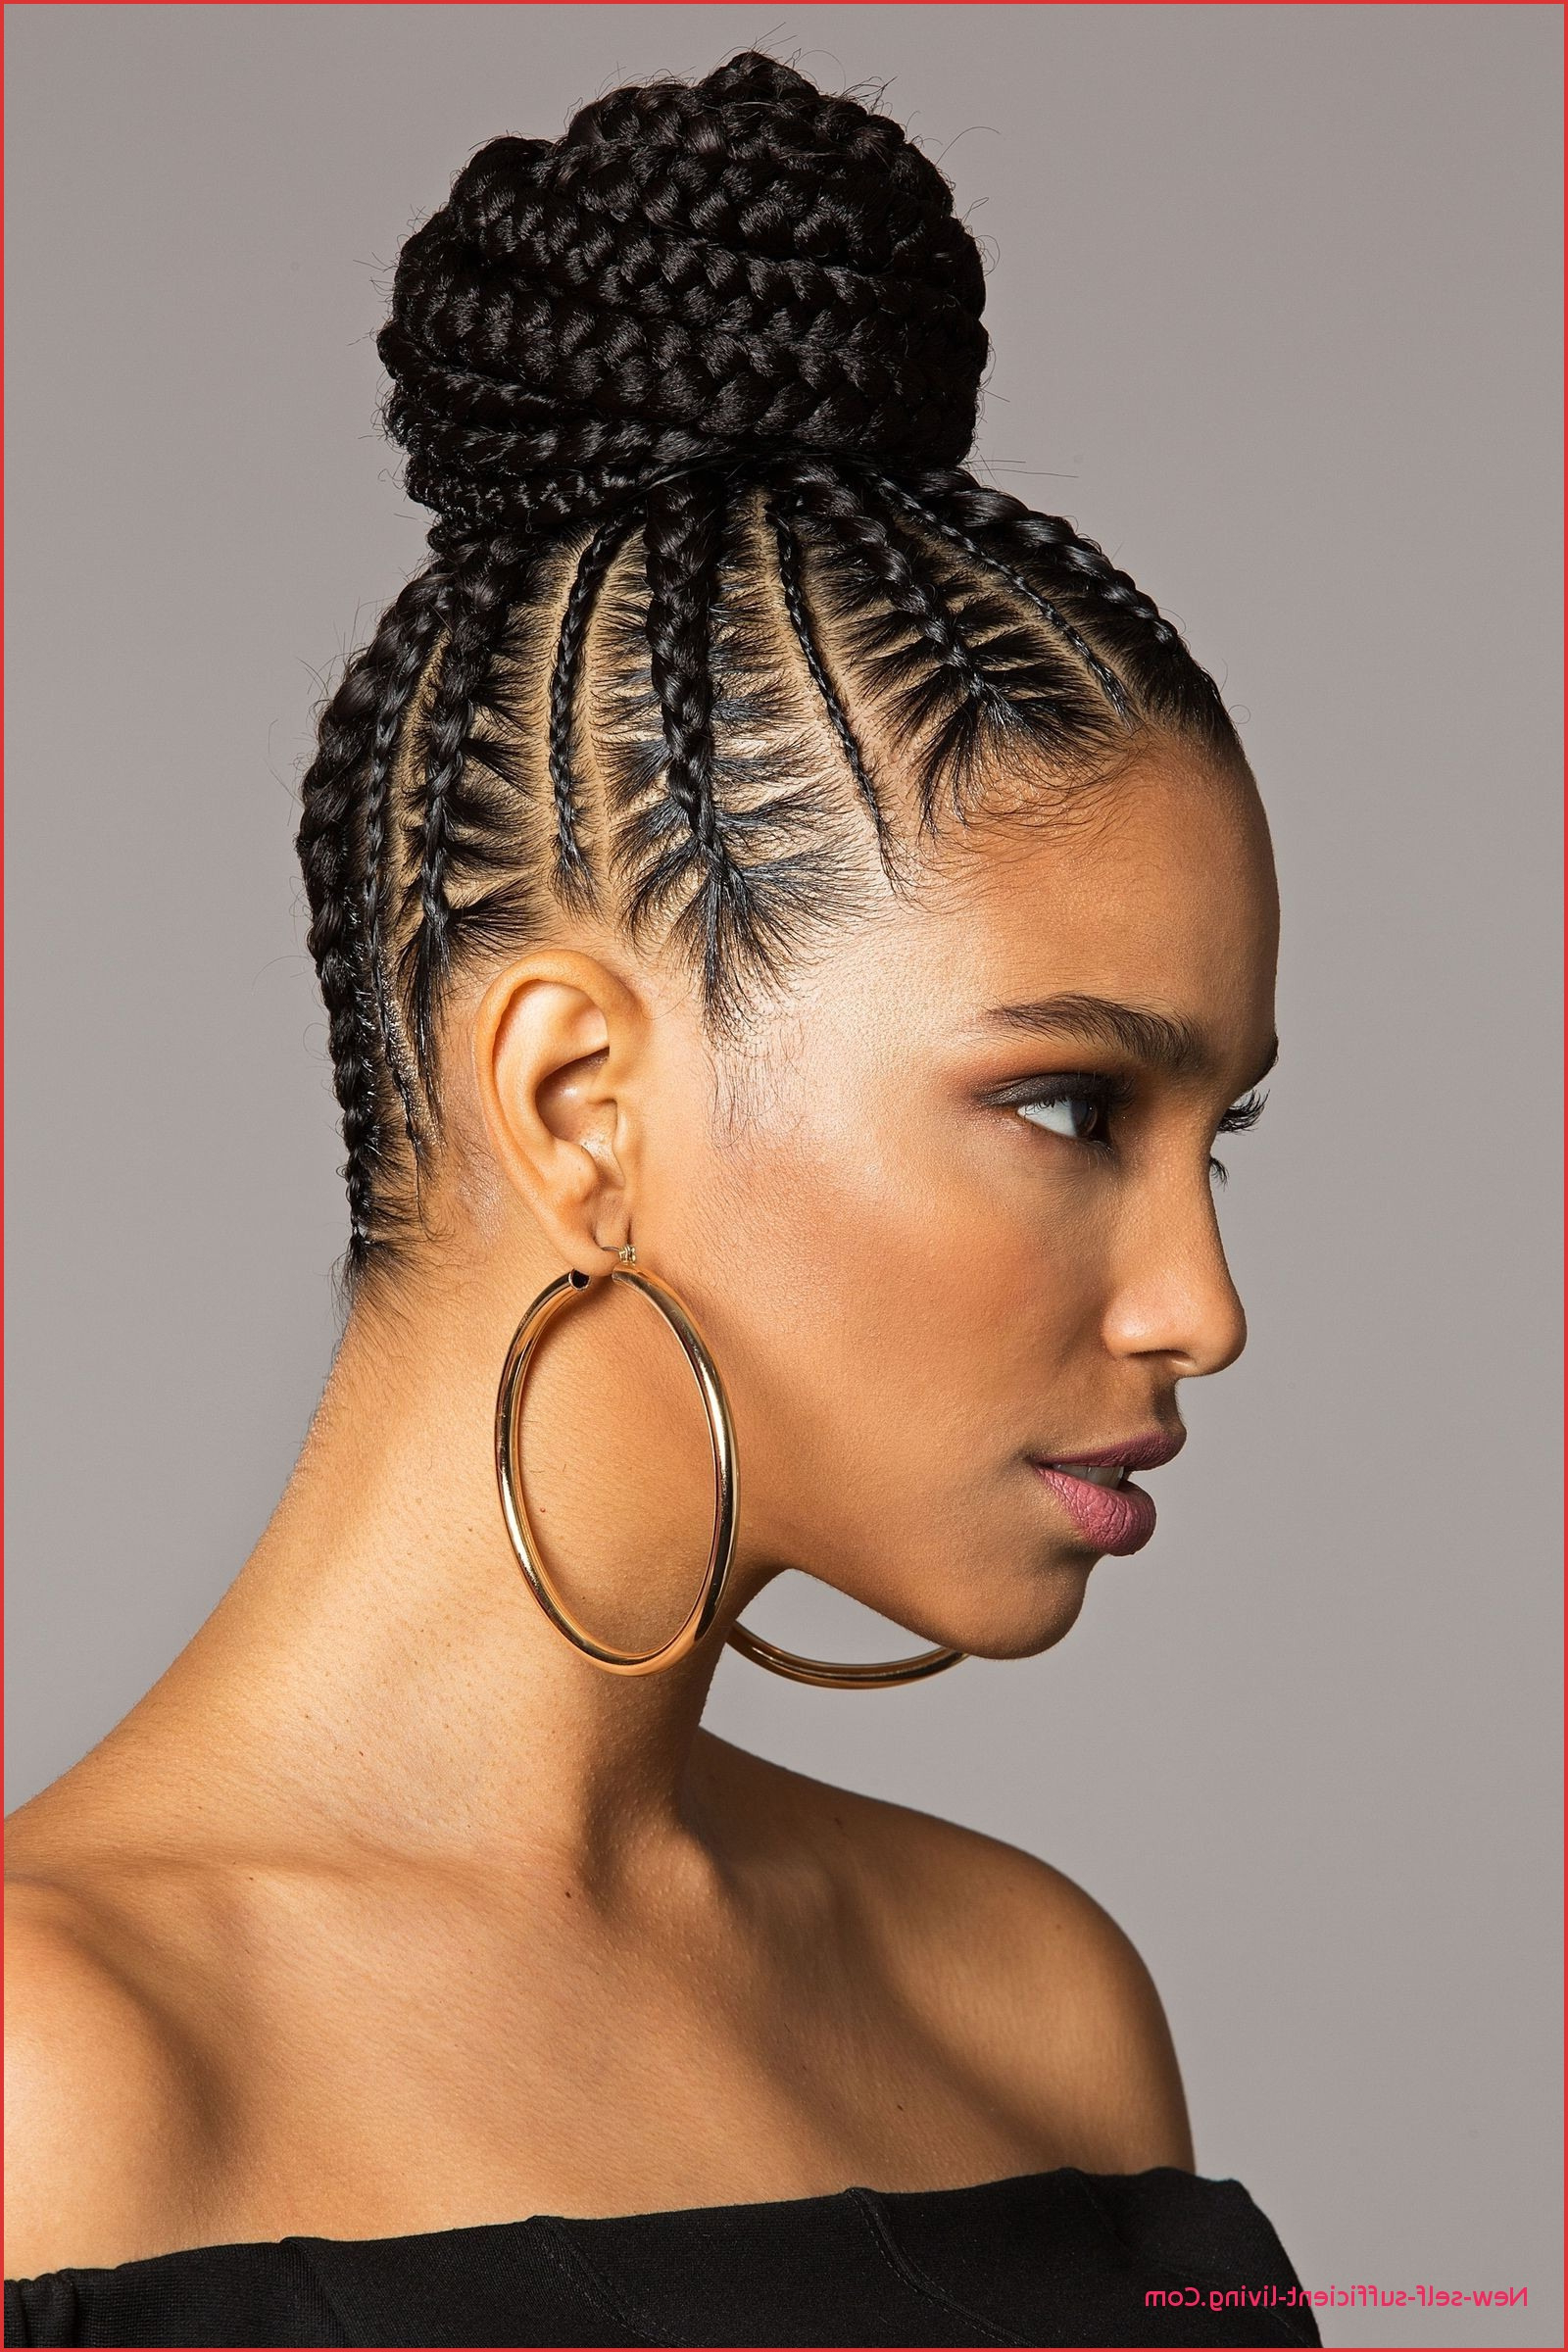 Widely Used Cornrow Braided Bun Hairstyles With Fashion : Cornrow Updo Bun Hairstyles Amusing Braided Bun (Gallery 2 of 20)